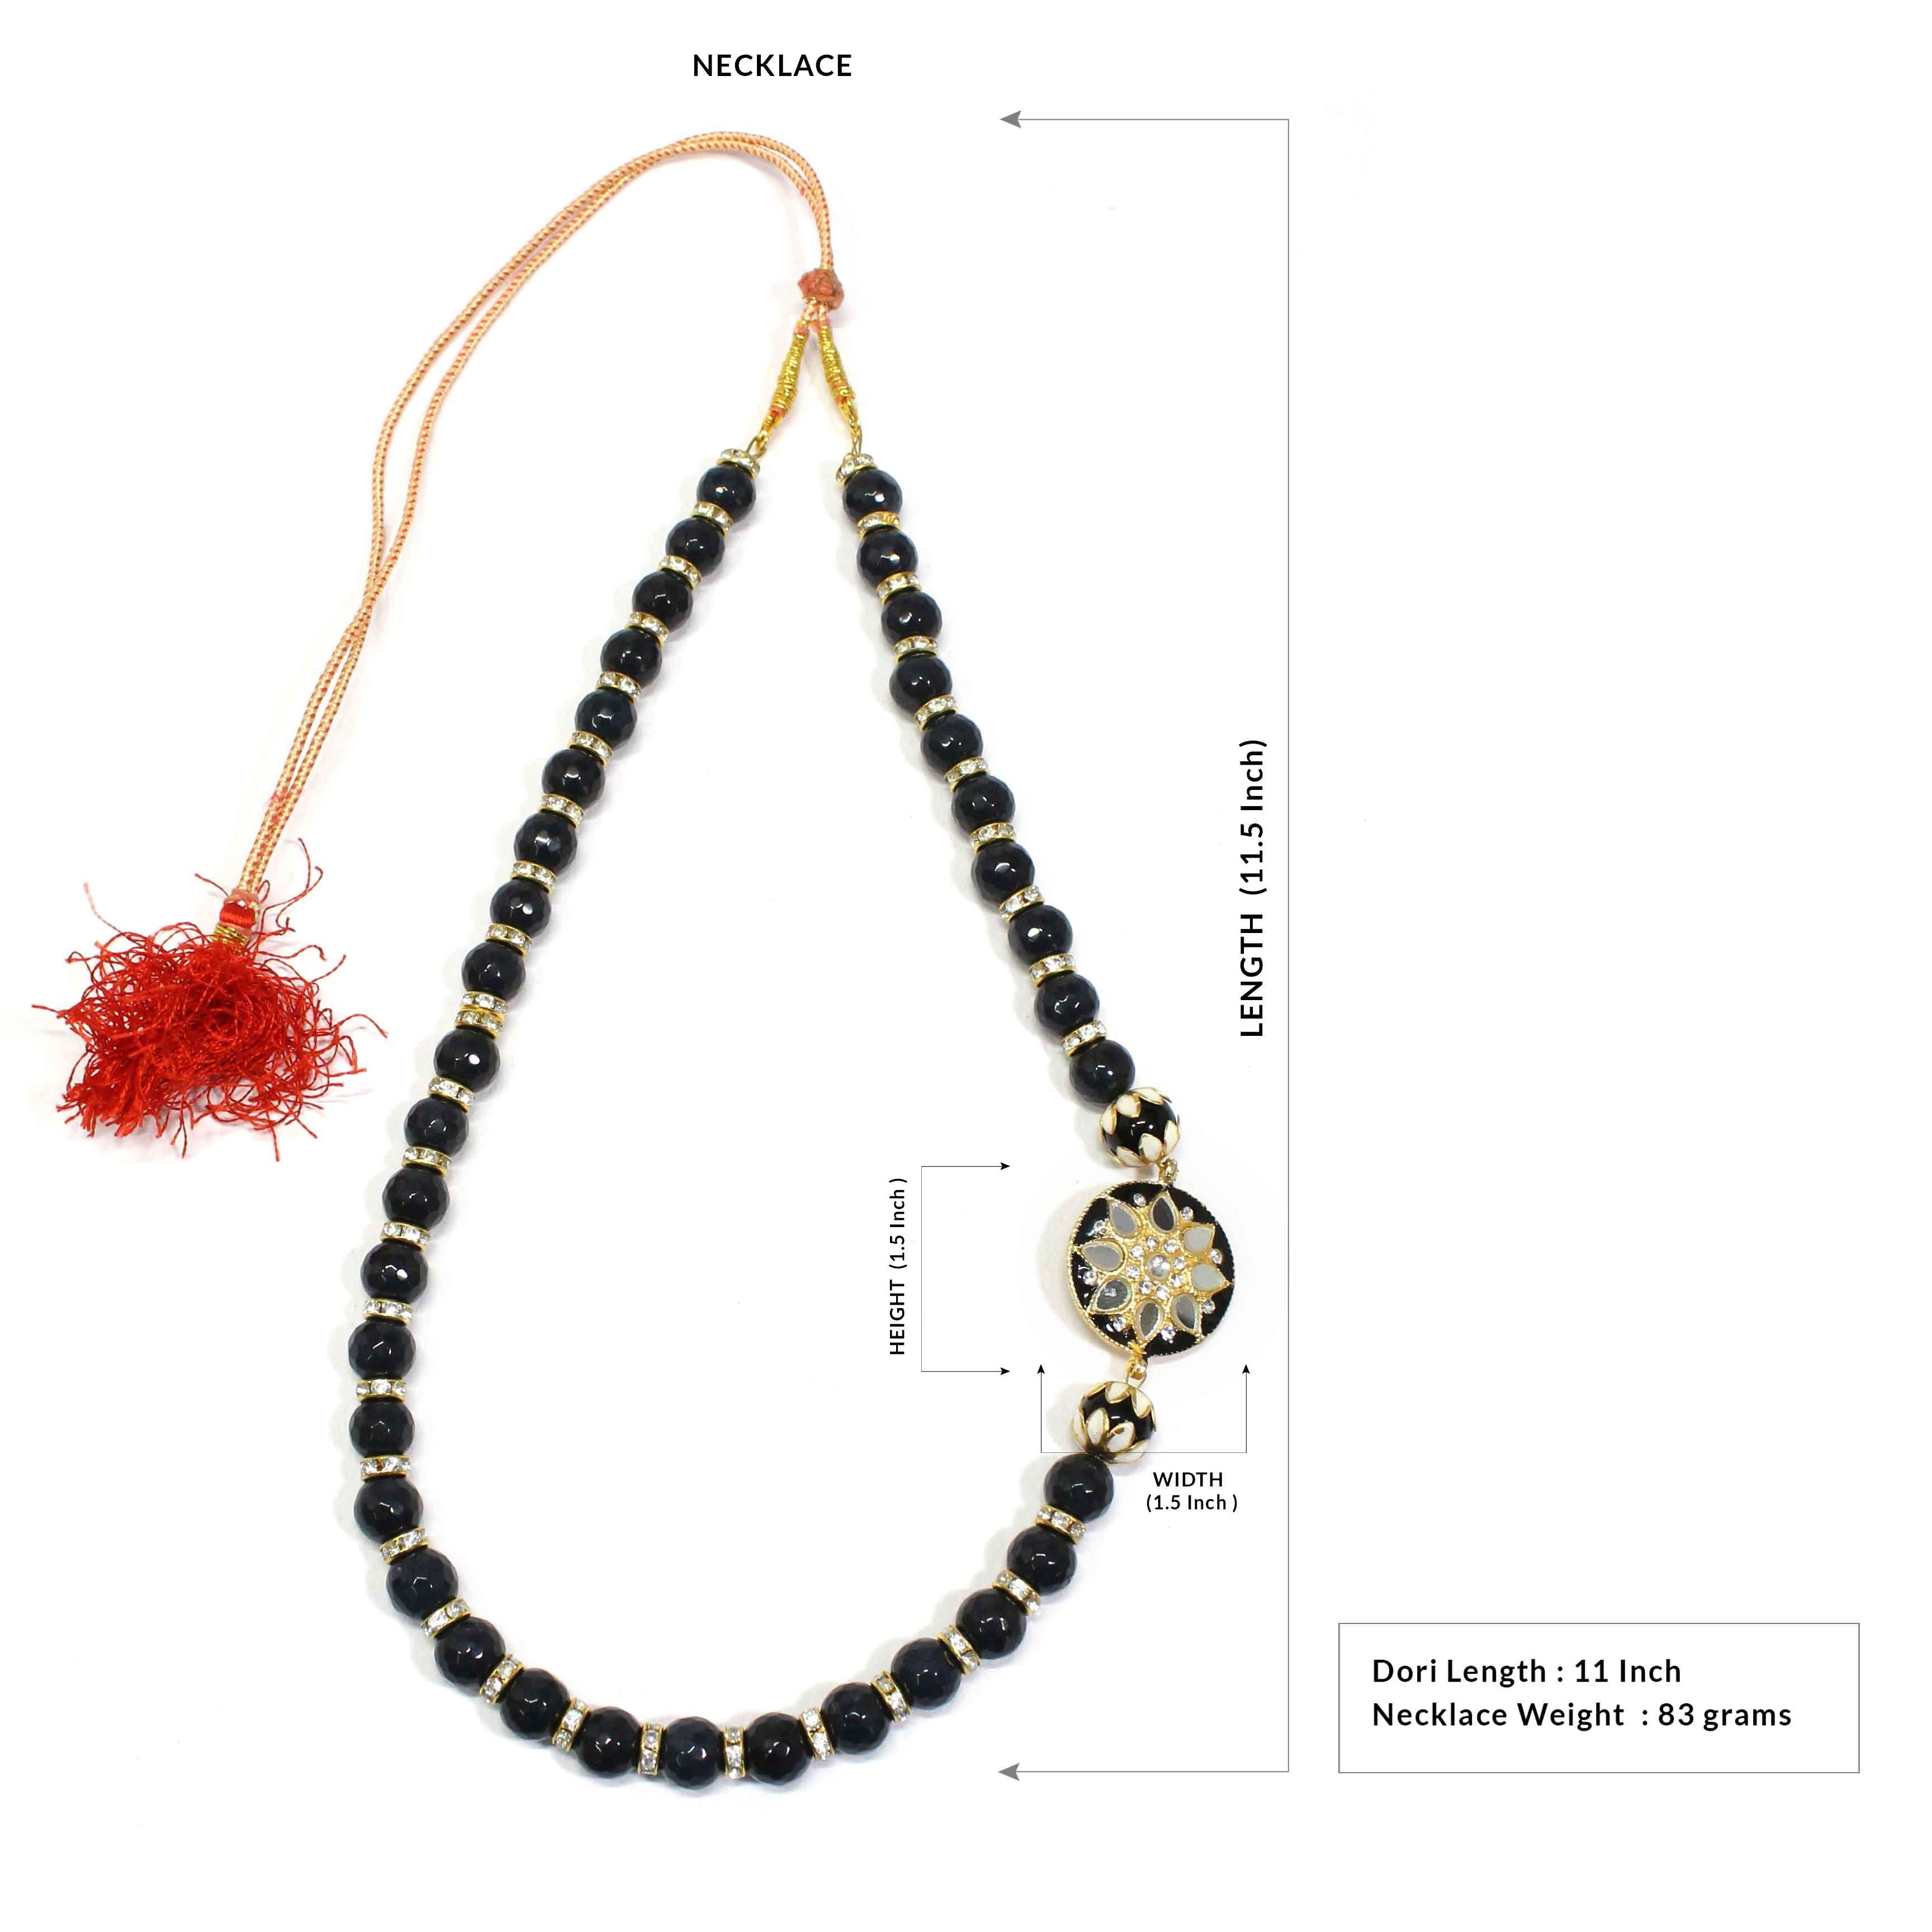 Semi Precious Smokey Black Topaz Beads Necklace with Meenakari Side Pendant